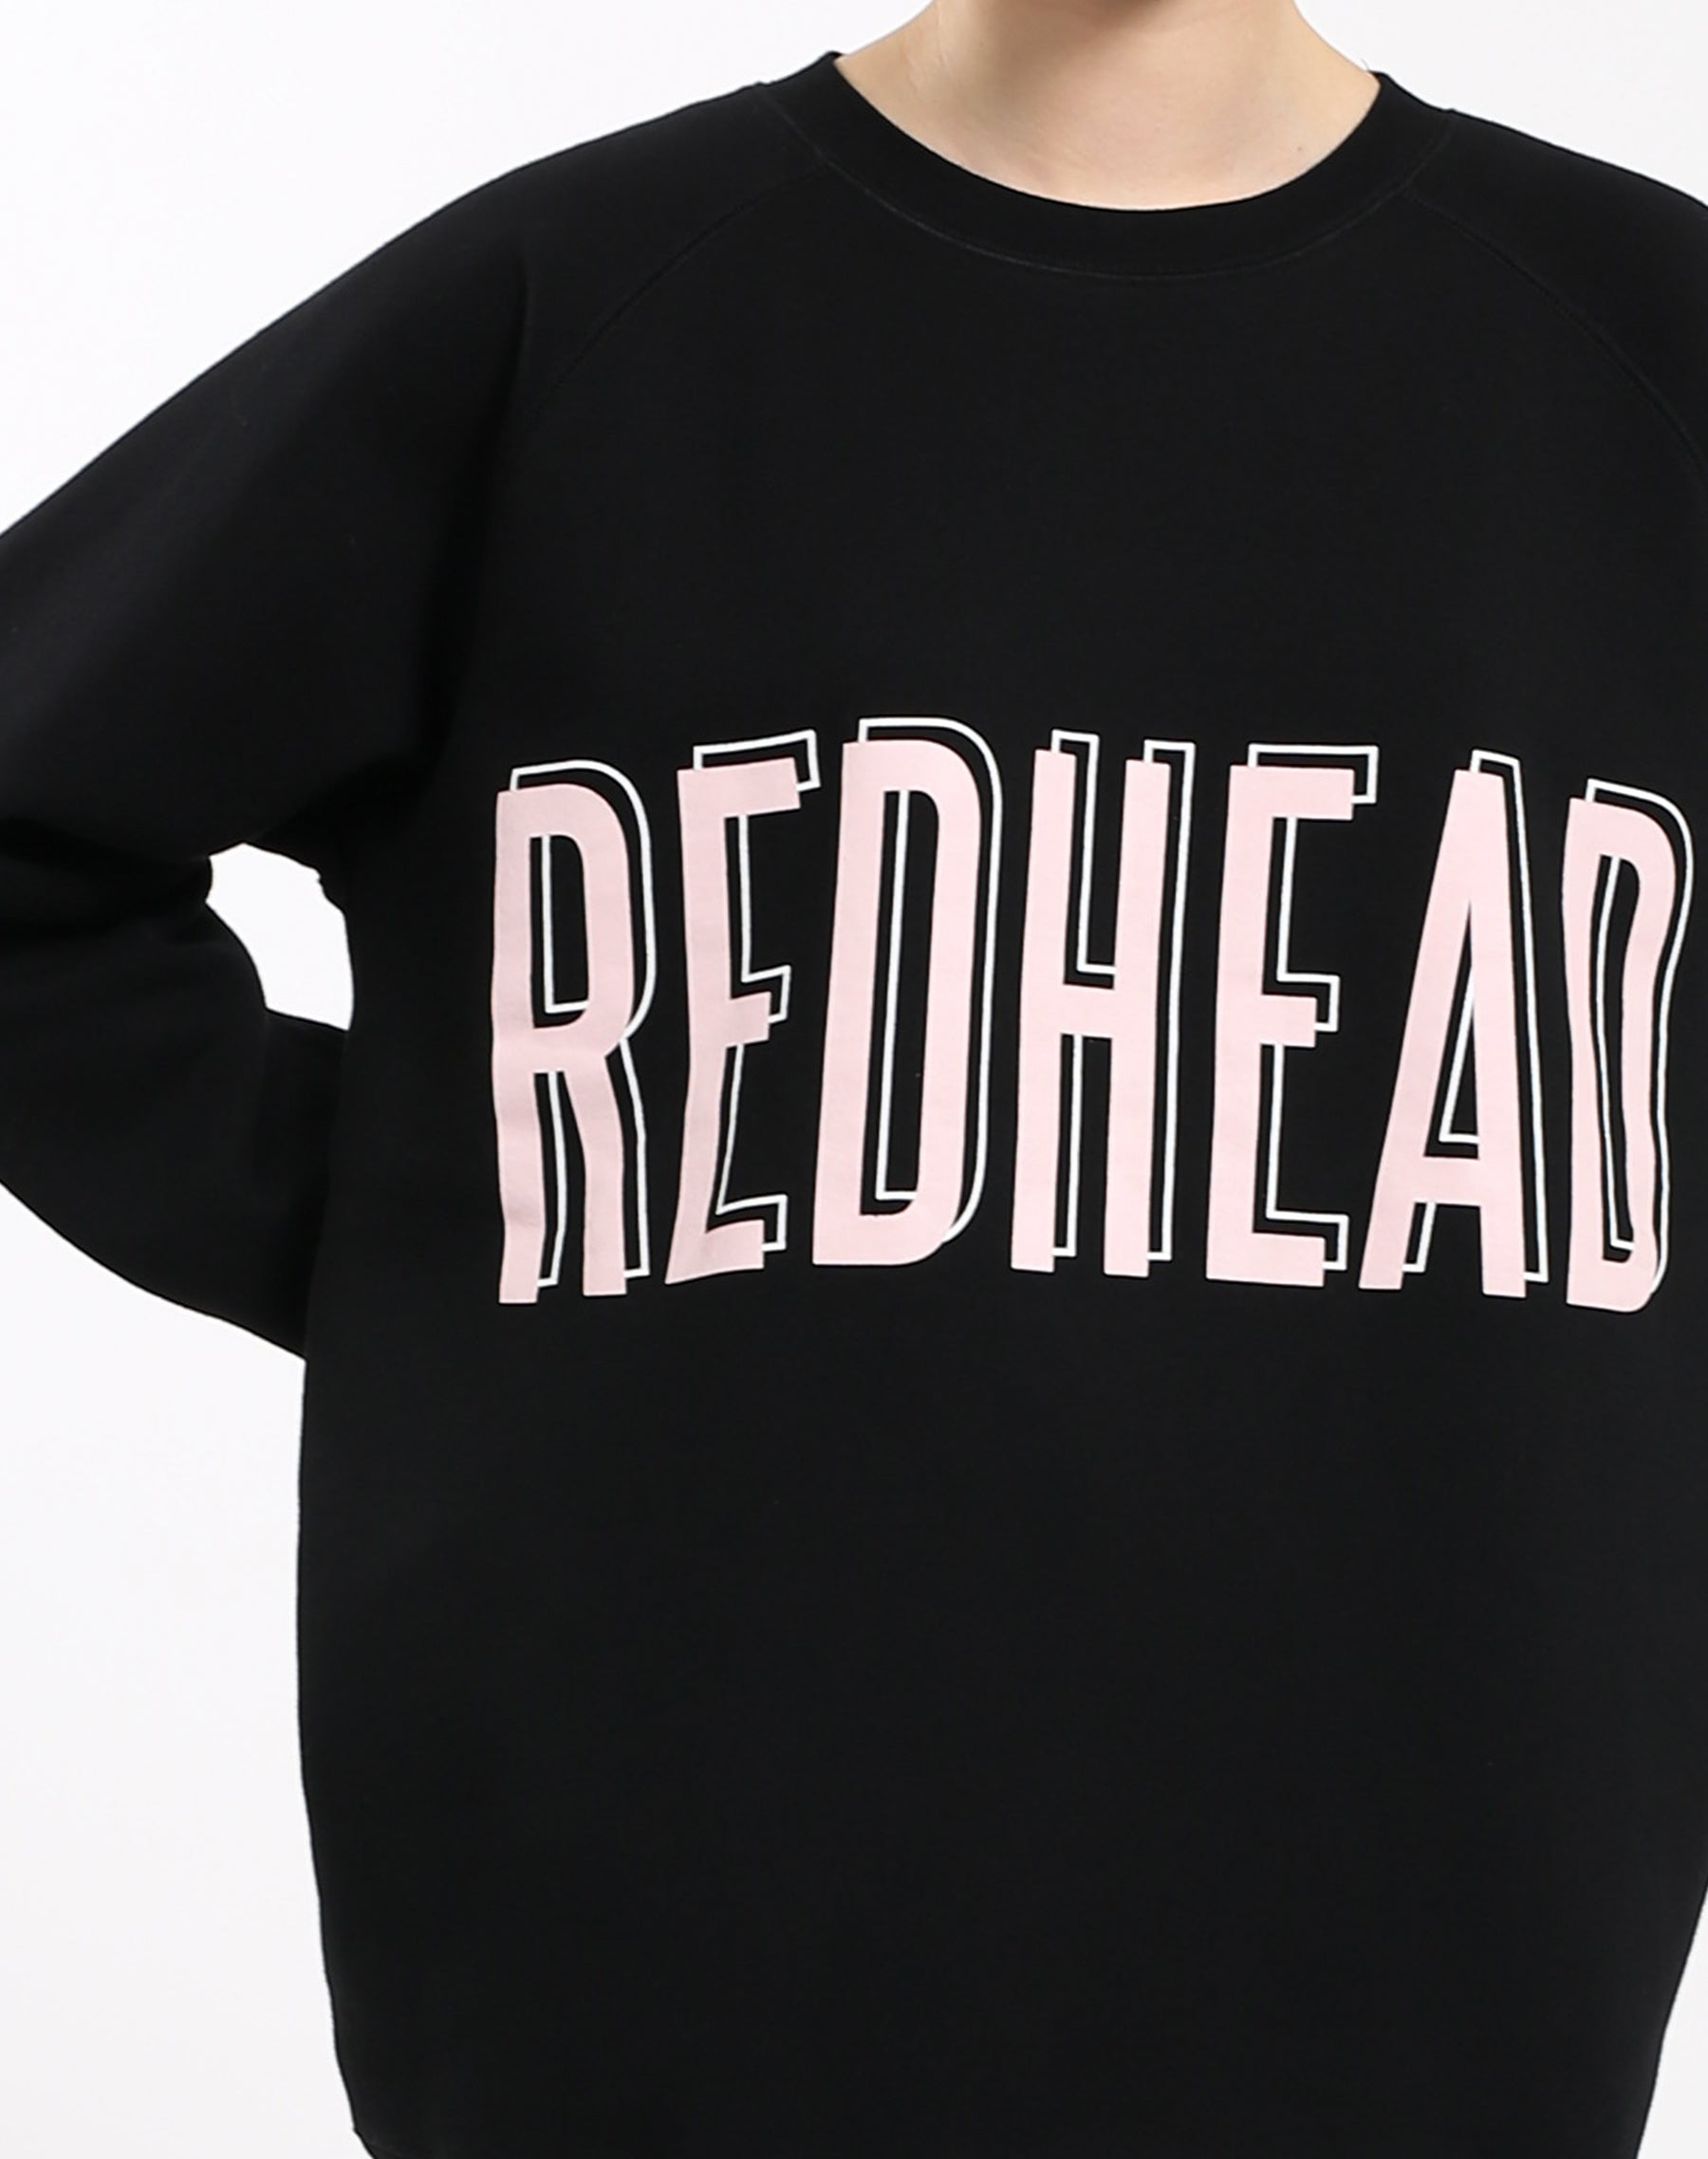 Photo 3 of the Redhead big sister crew neck sweatshirt in pink by Brunette the Label.